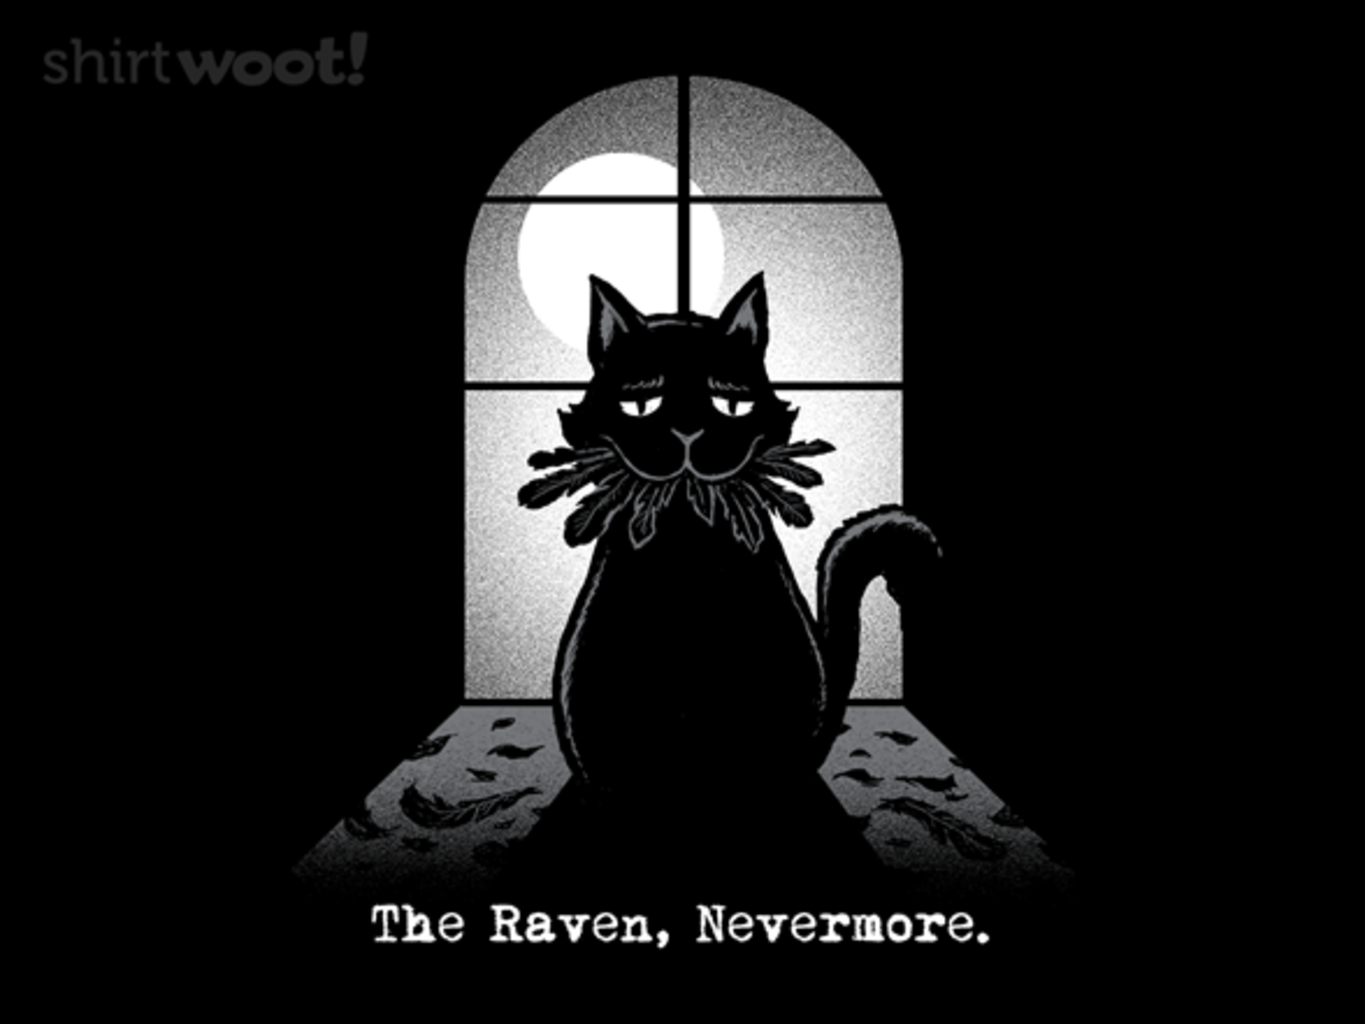 Woot!: The Raven, Nevermore - $8.00 + $5 standard shipping